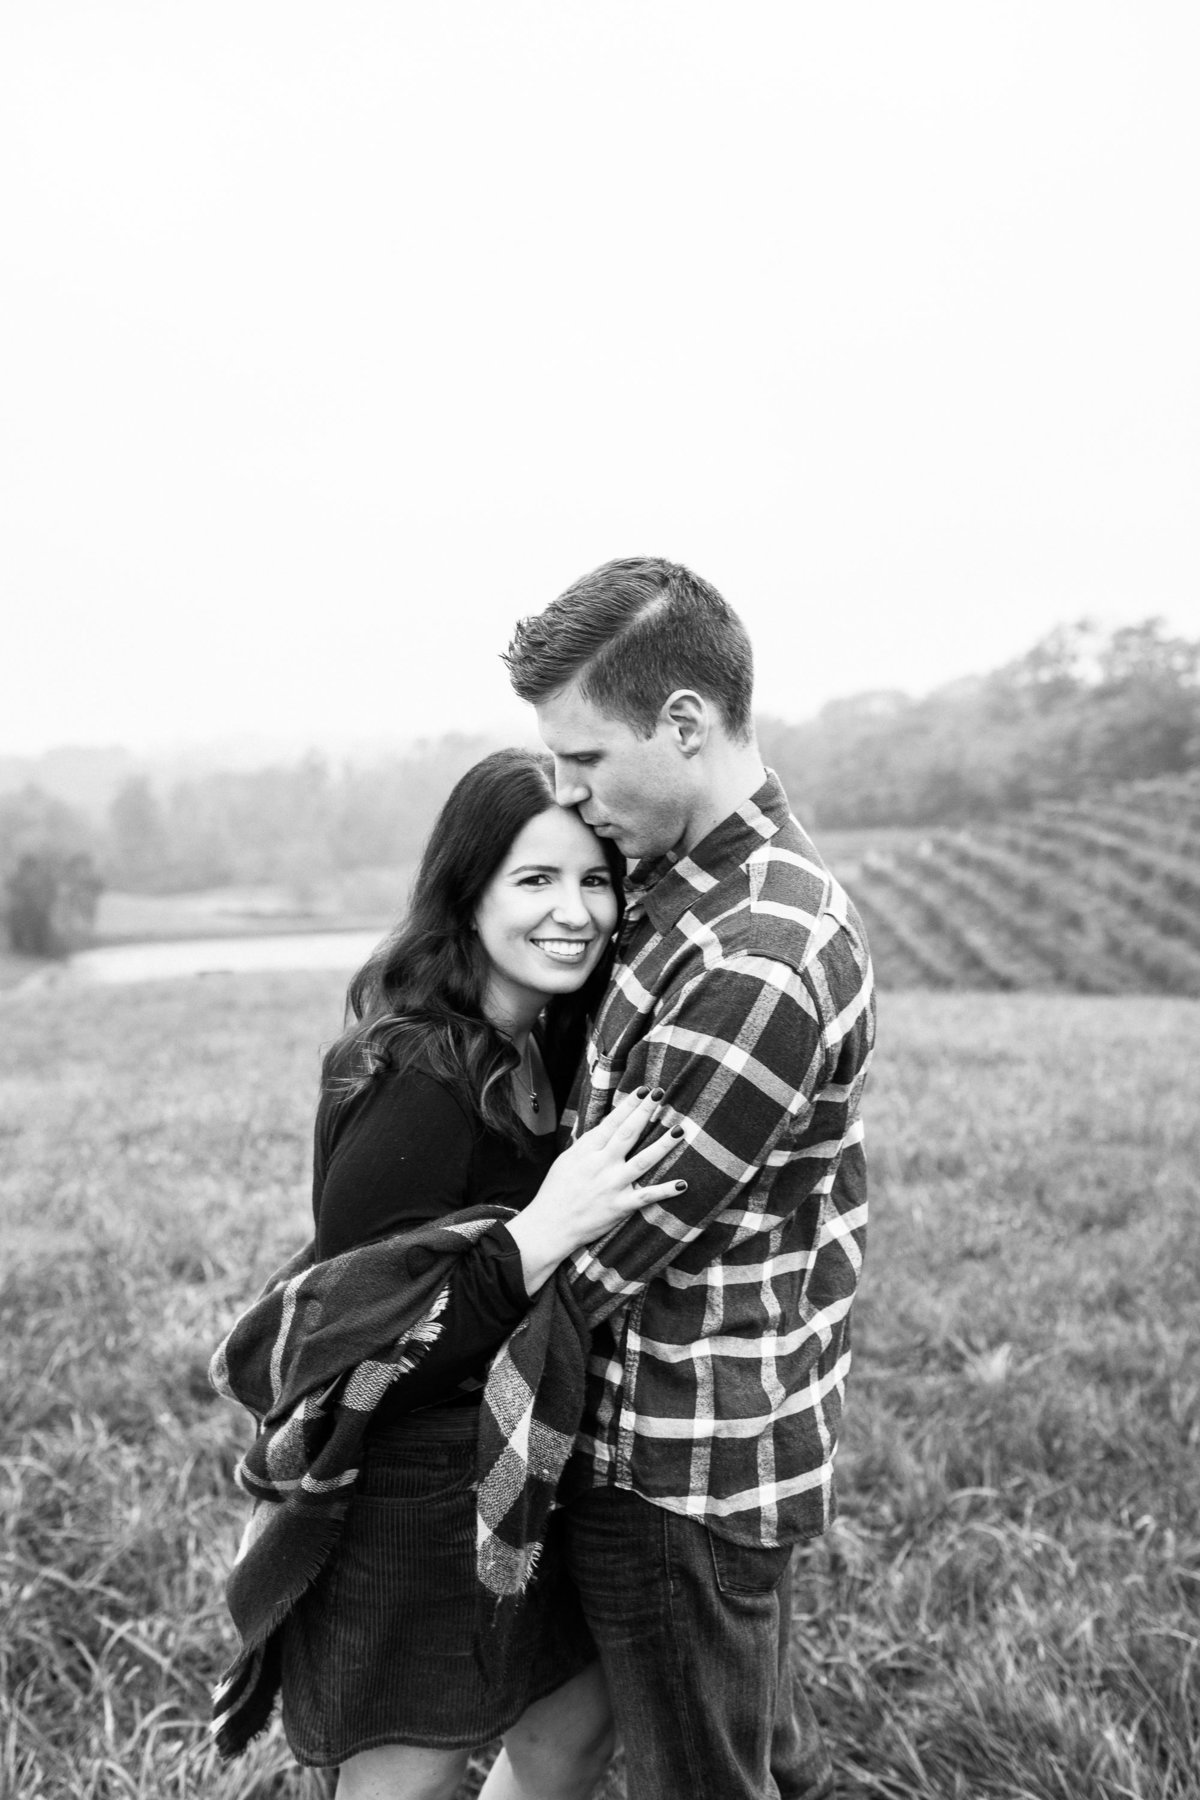 A couple embraces each other during a light rain at a winery in Cincinnati, Ohio